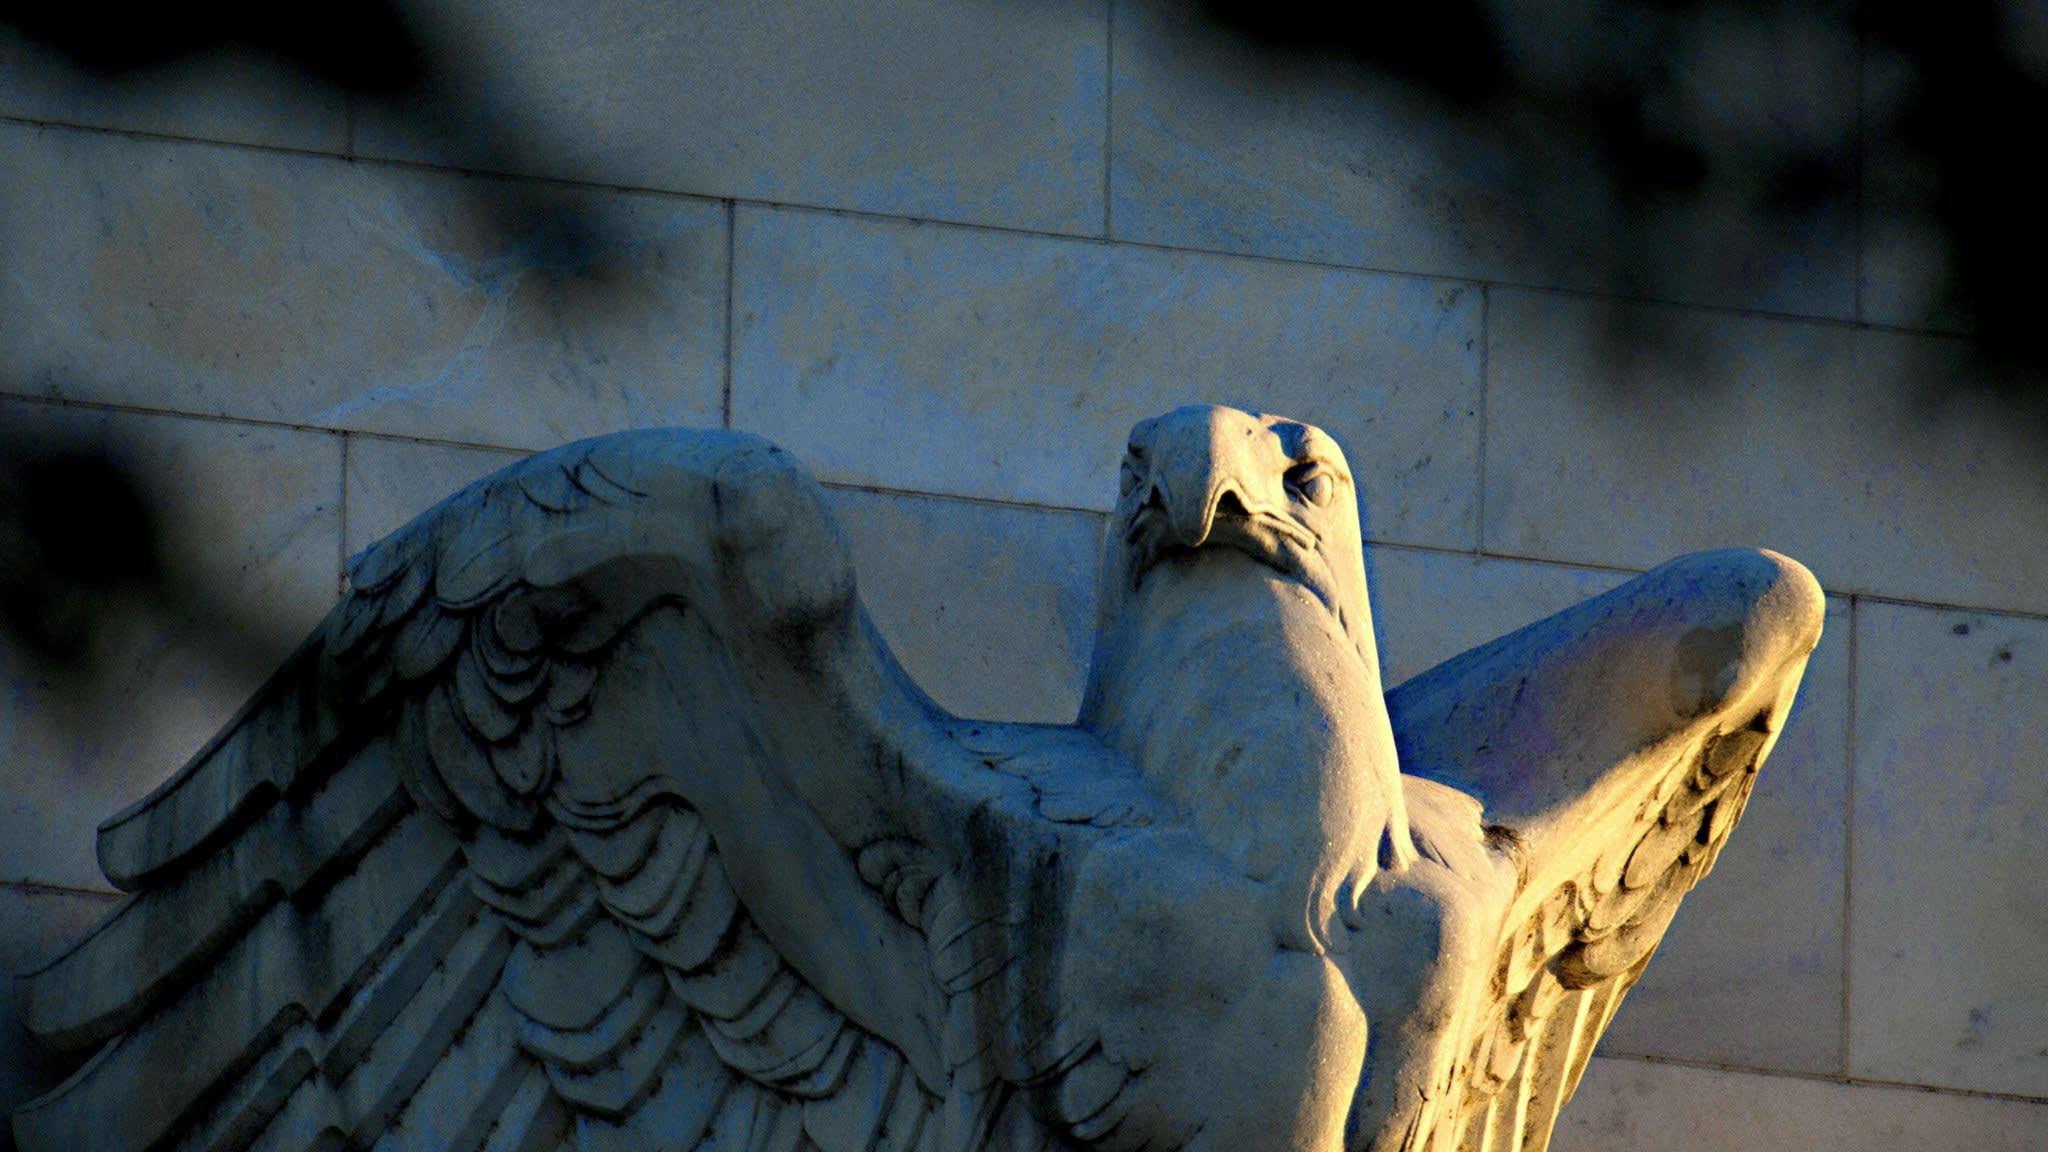 Federal Reserve faces key decisions as balance sheet shrinks